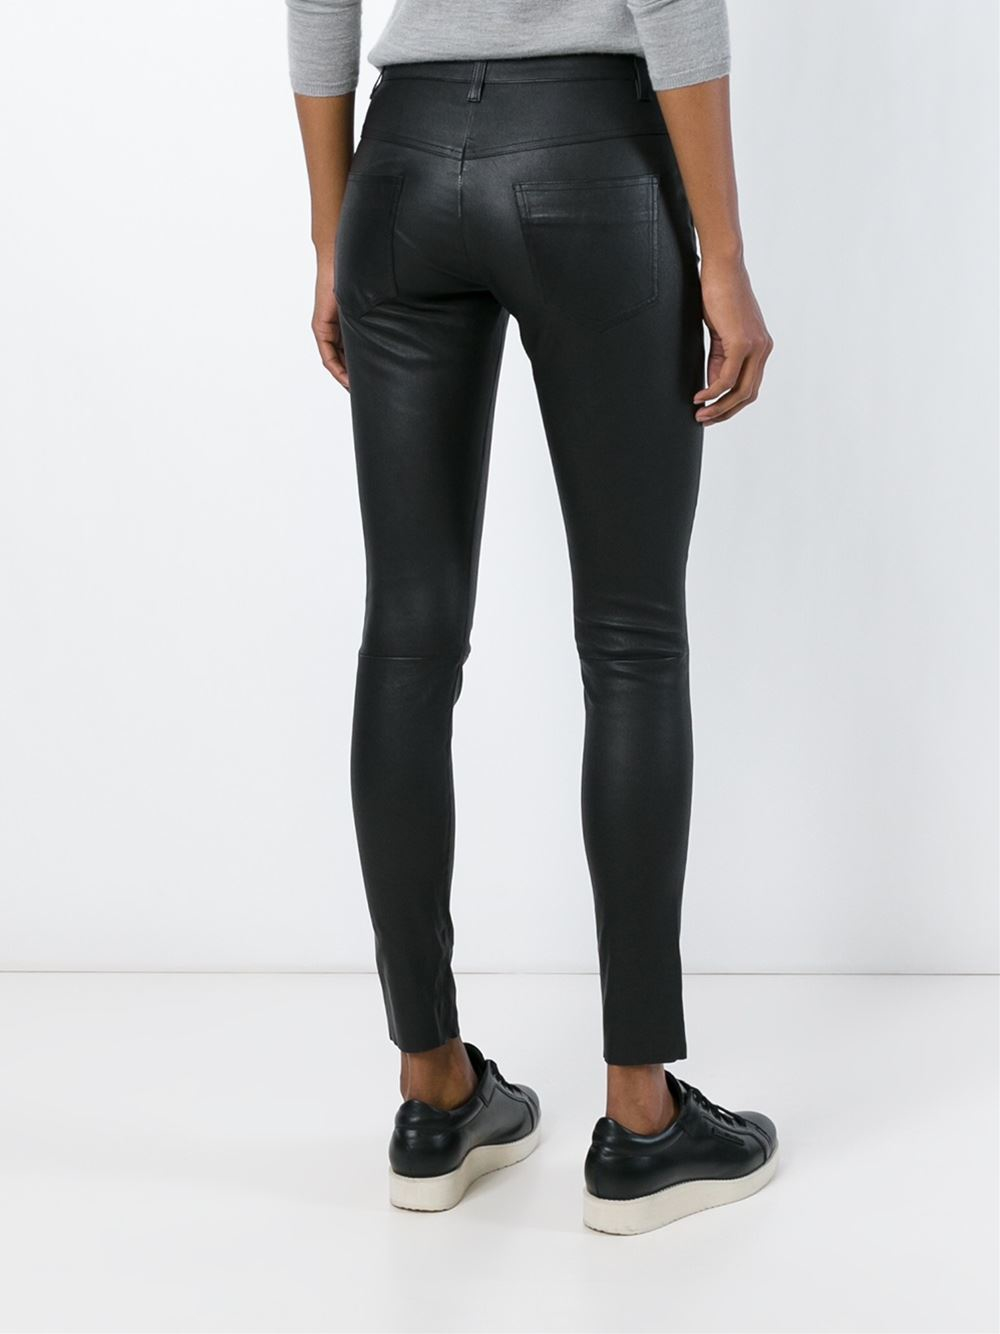 Trousers Black Muubaa Lyst Skinny Leather In cR354ALqj